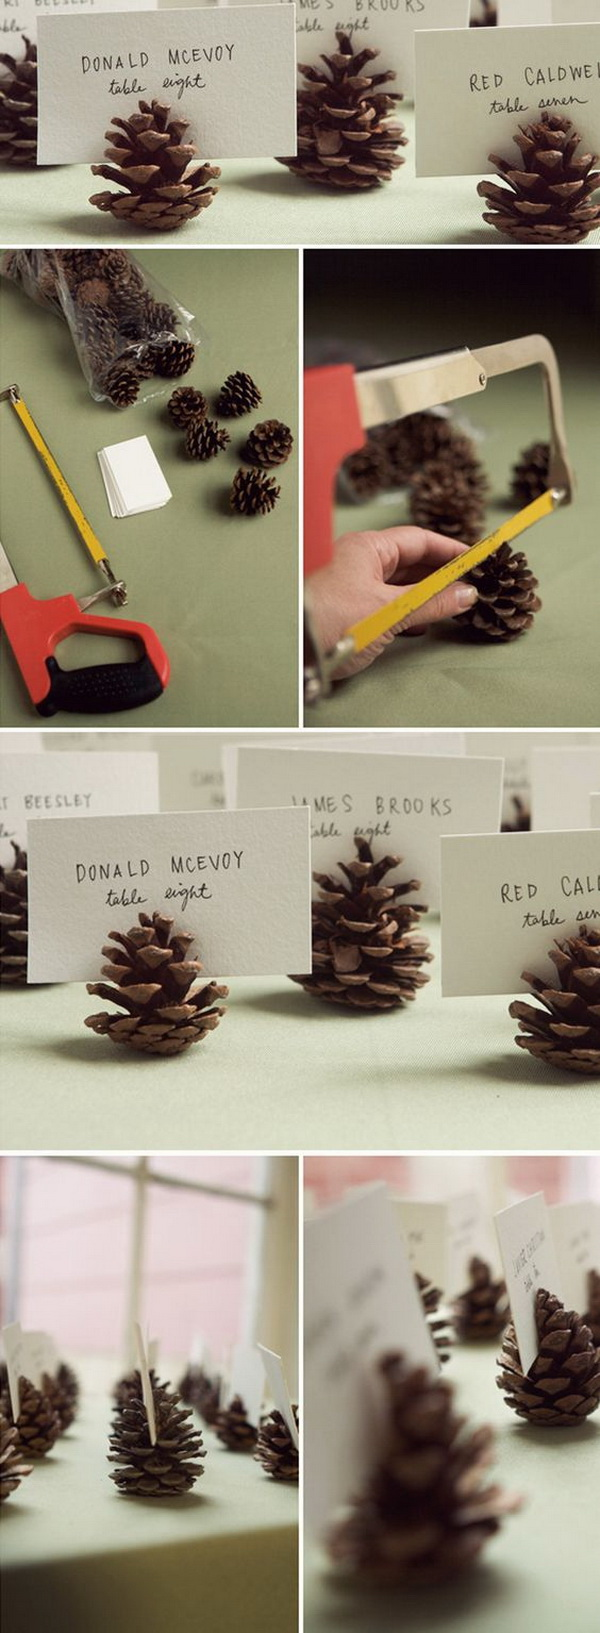 Festive Diy Pine Cone Crafts For Your Holiday Decoration For Creative Juice